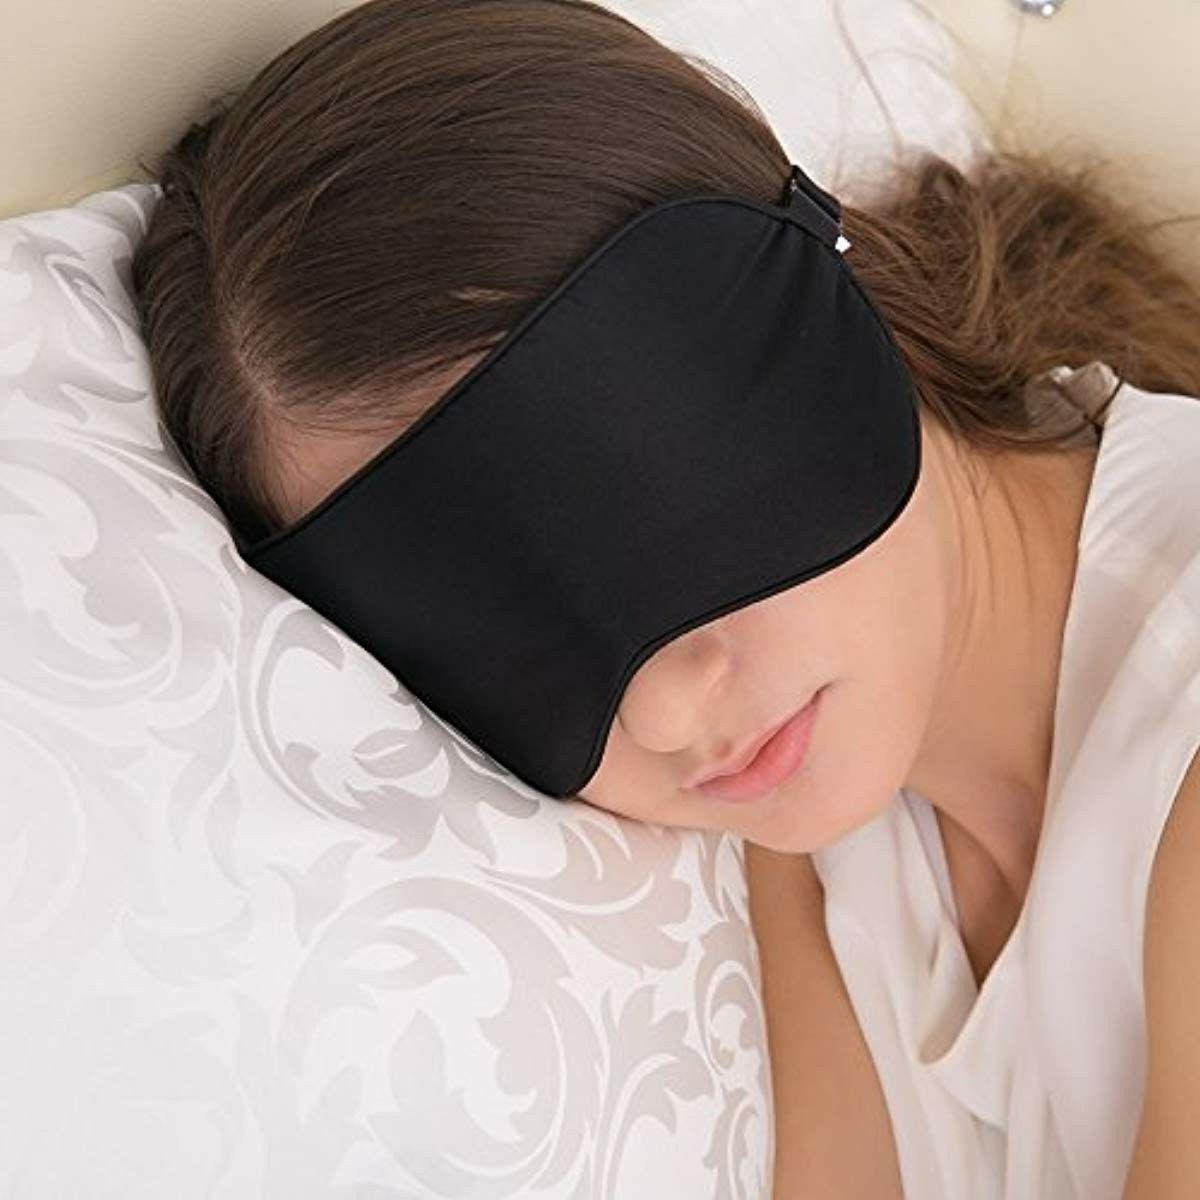 Alaska Sleep Blindfold, Smooth Strap